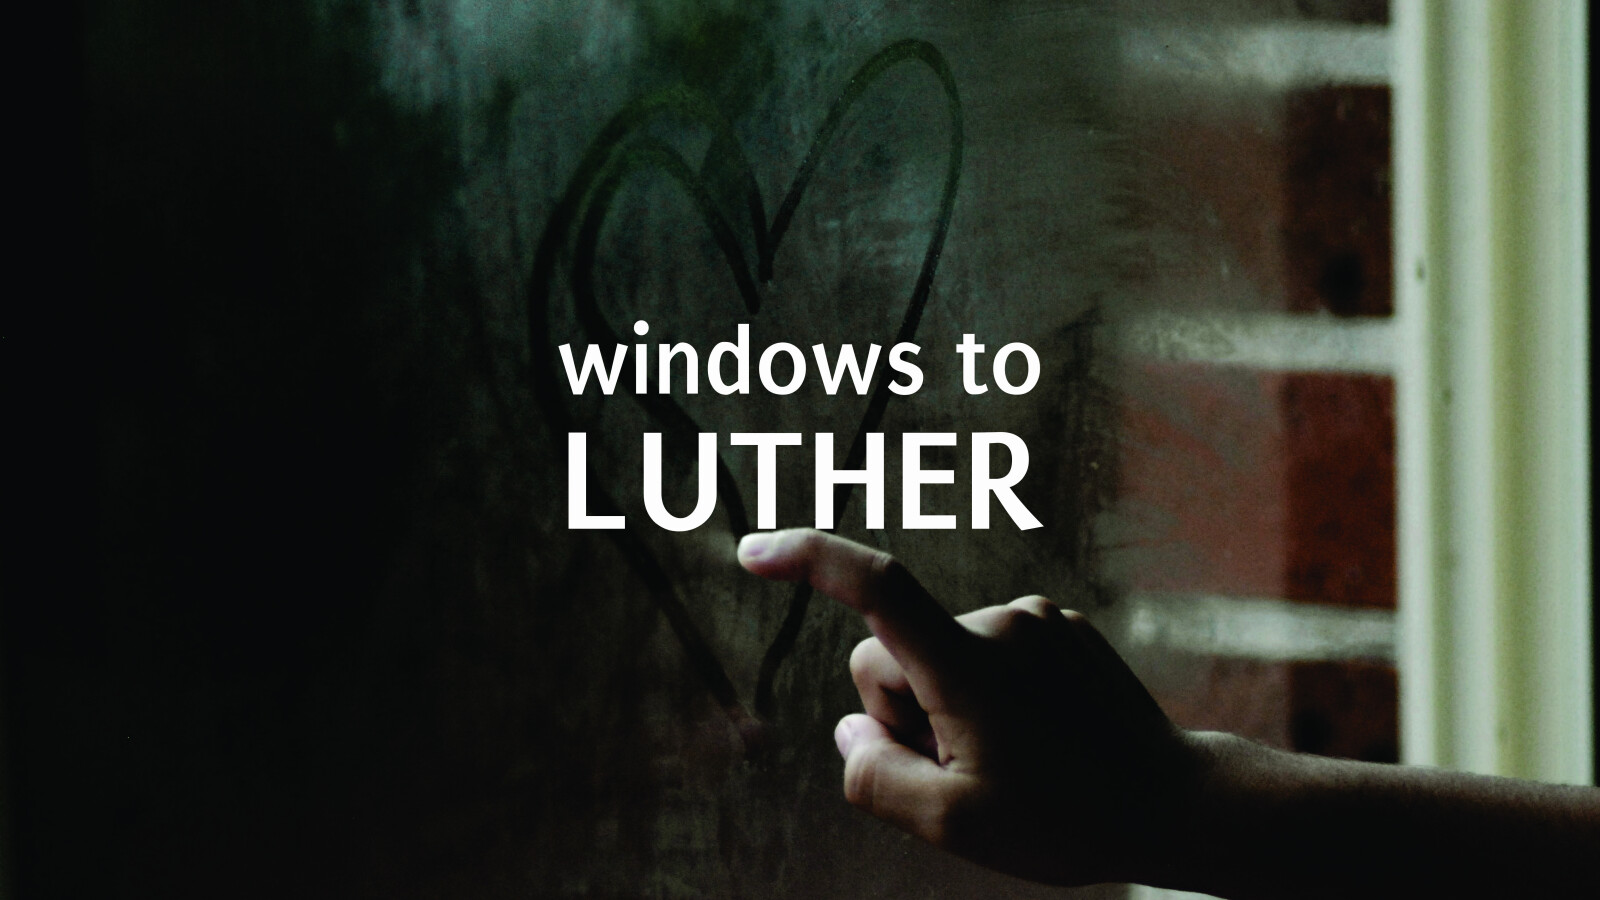 Windows to Luther